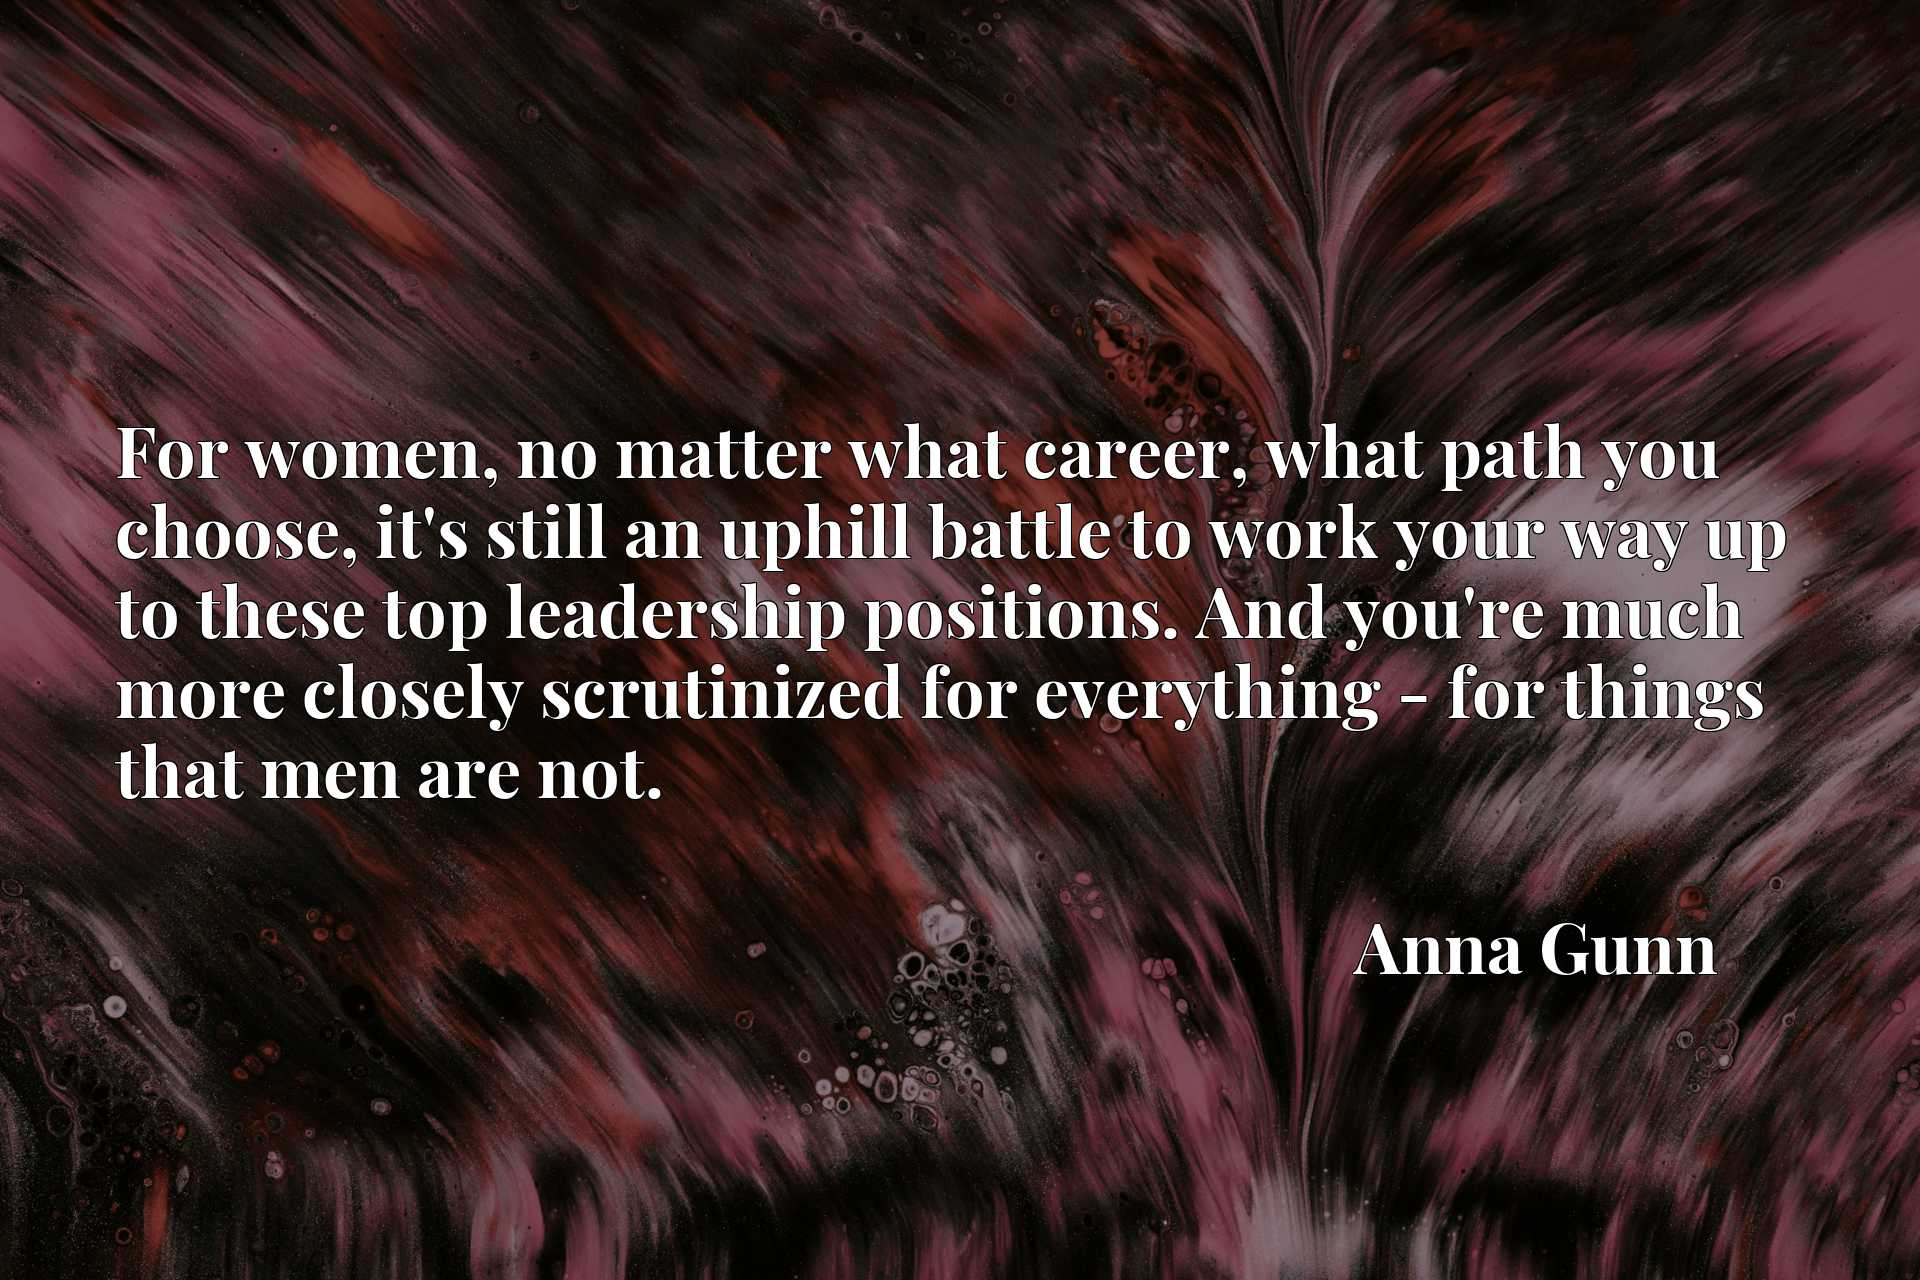 Quote Picture :For women, no matter what career, what path you choose, it's still an uphill battle to work your way up to these top leadership positions. And you're much more closely scrutinized for everything - for things that men are not.